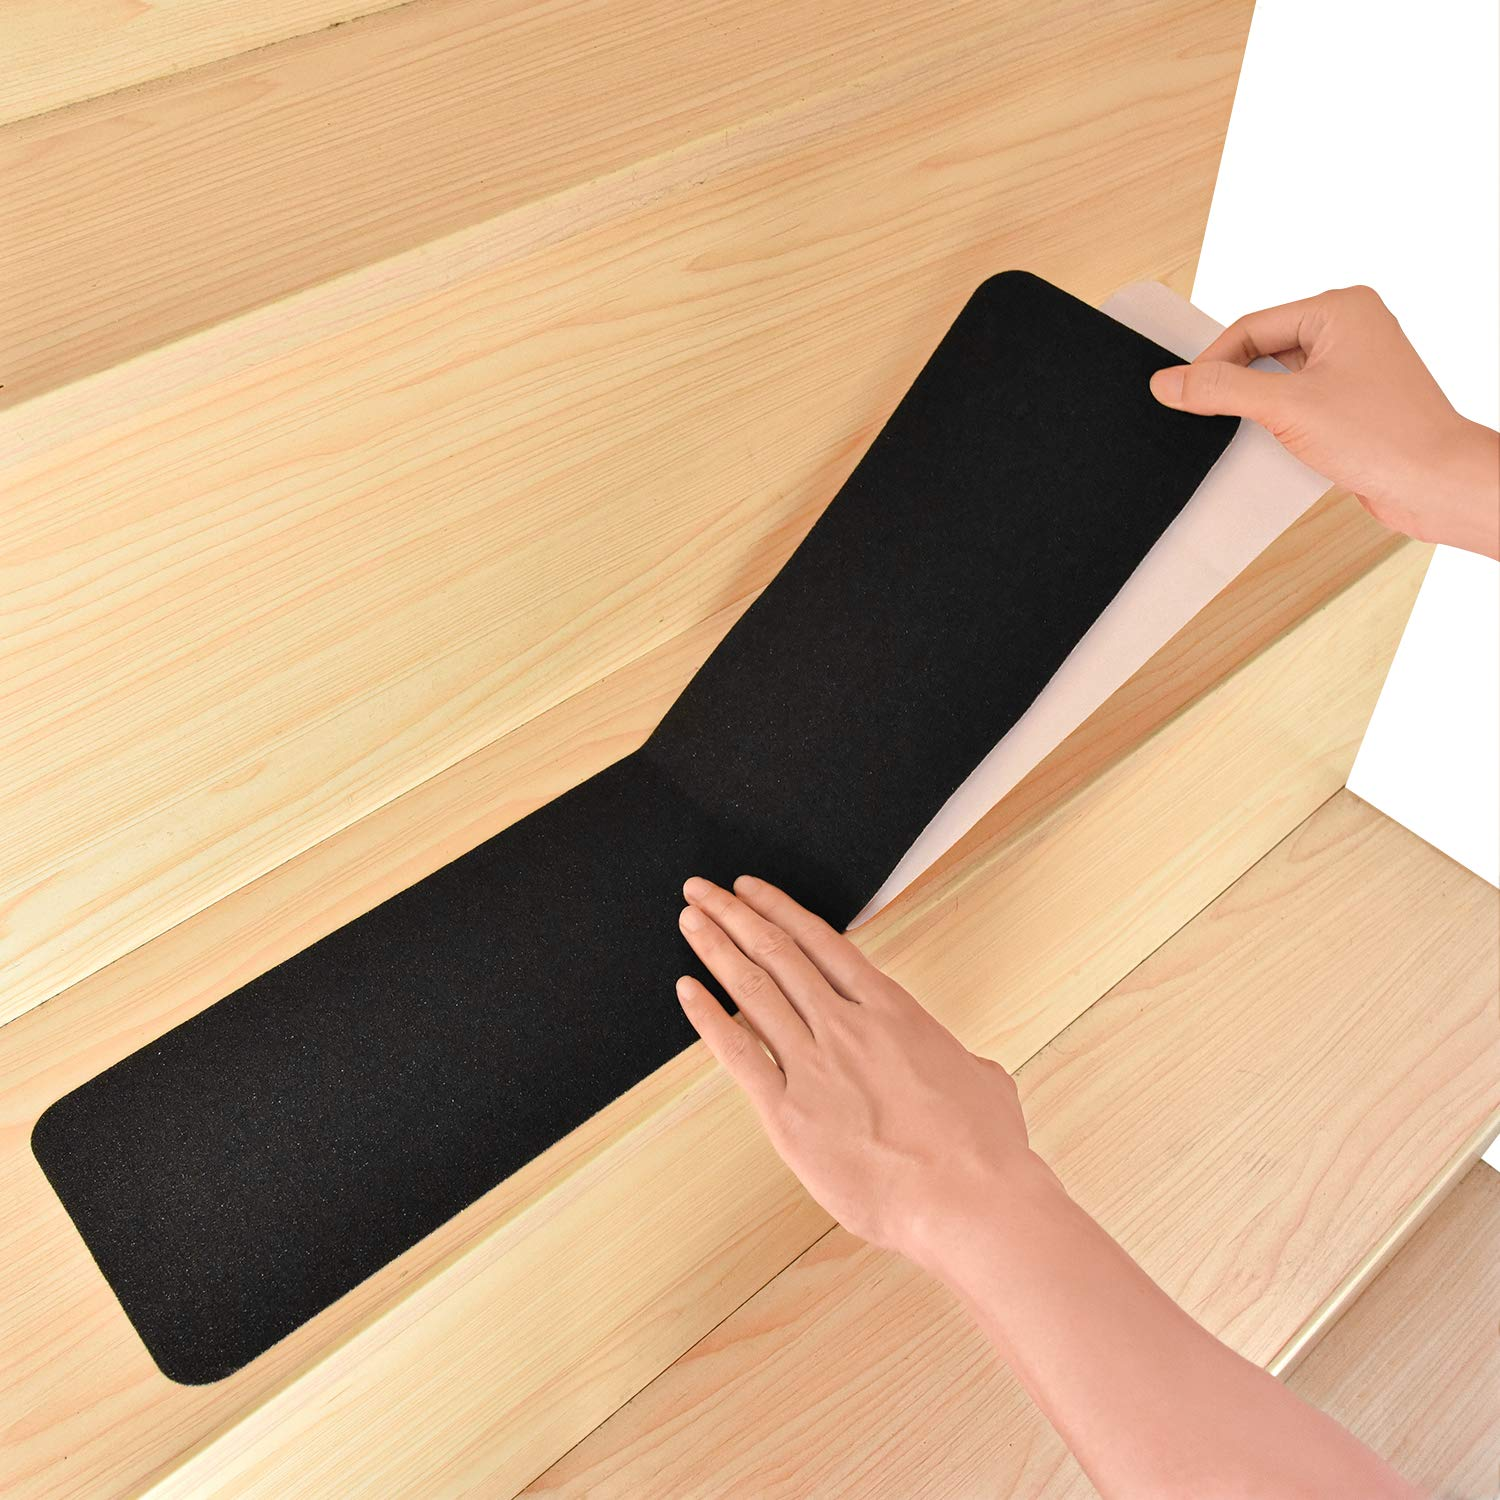 MBIGM Pack of 8 Non-Slip Safety Step Tapes Wood Stair Treads Floor Track Sticker 80 Grit for Skateboard & Outdoor & Staircase, Black (6''x24'', Black) by MBIGM